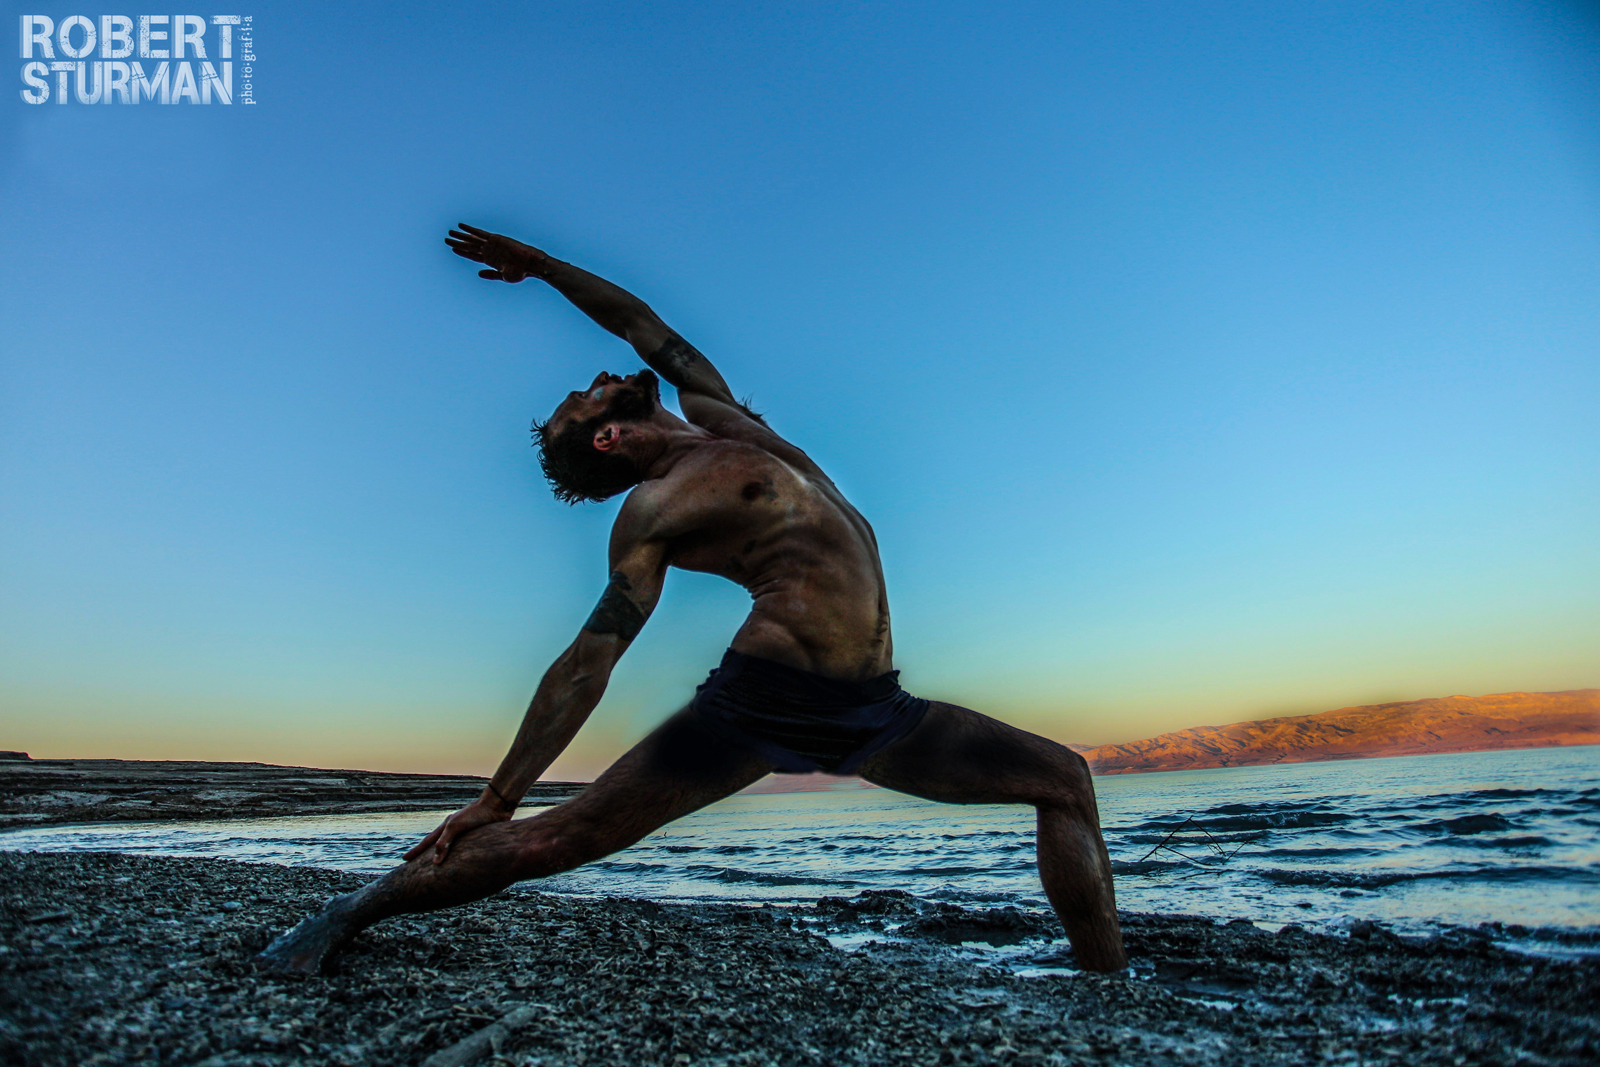 Udi Sahar doing yoga at sundown at the Dead Sea. Photo by Robert Sturman